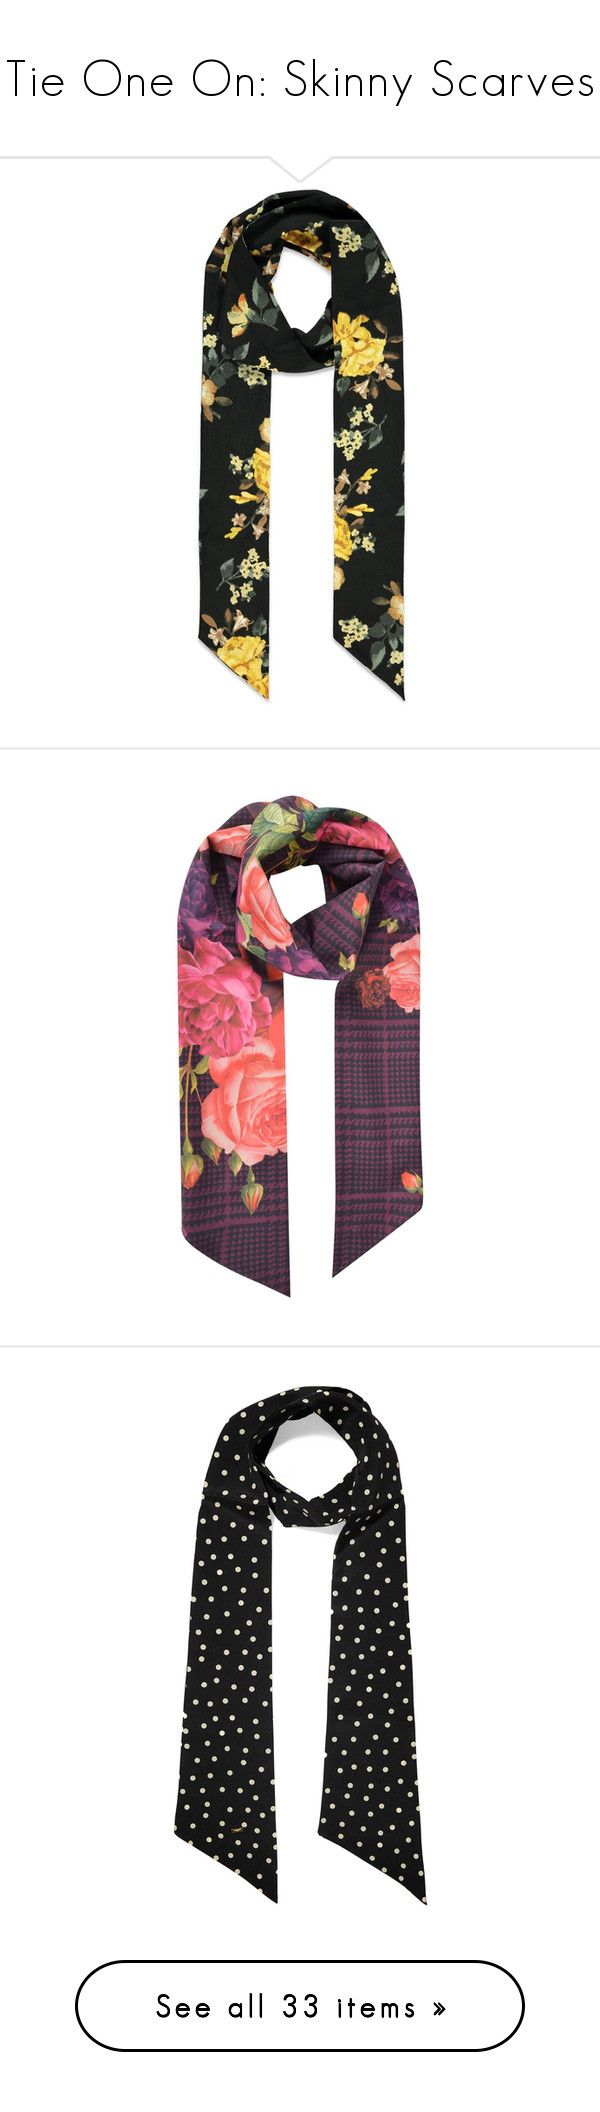 """""""Tie One On: Skinny Scarves"""" by polyvore-editorial ❤ liked on Polyvore featuring skinnyscarves, accessories, scarves, woven scarves, floral scarves, floral shawl, floral print scarves, long scarves, houndstooth shawl and houndstooth scarves"""